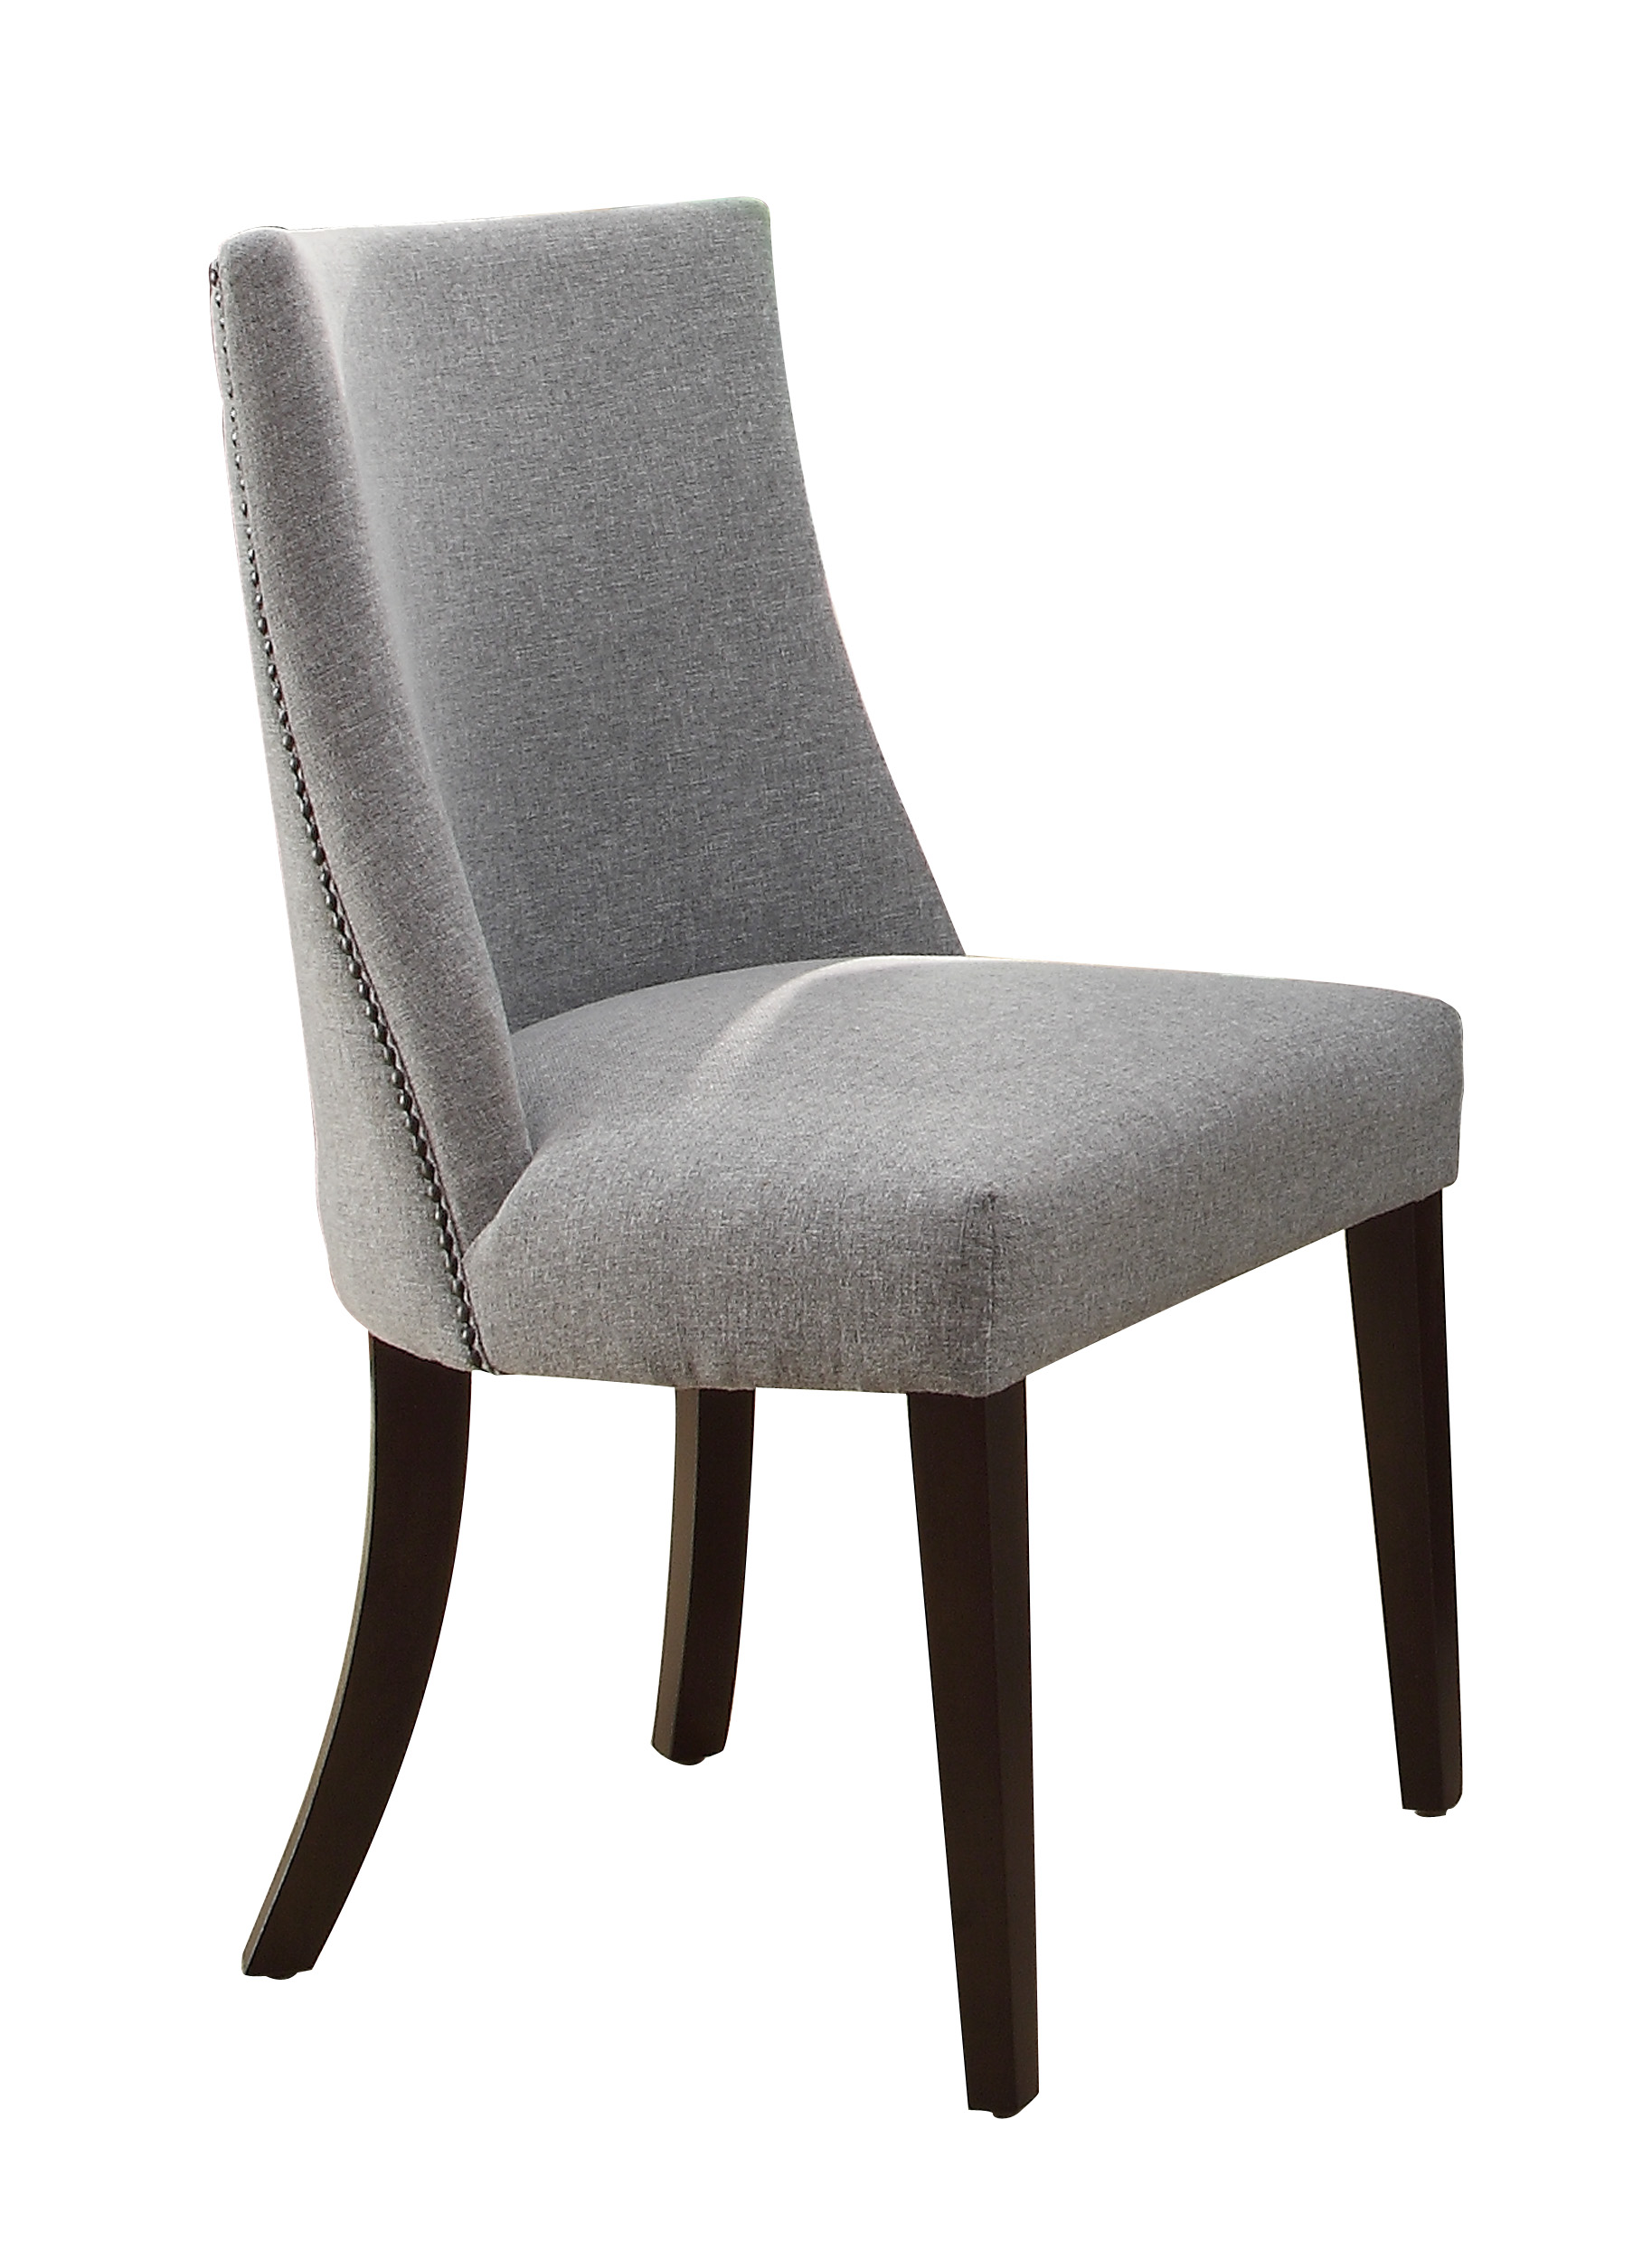 grey dining chairs nichols and stone chair value chicago upholstered side set of 2